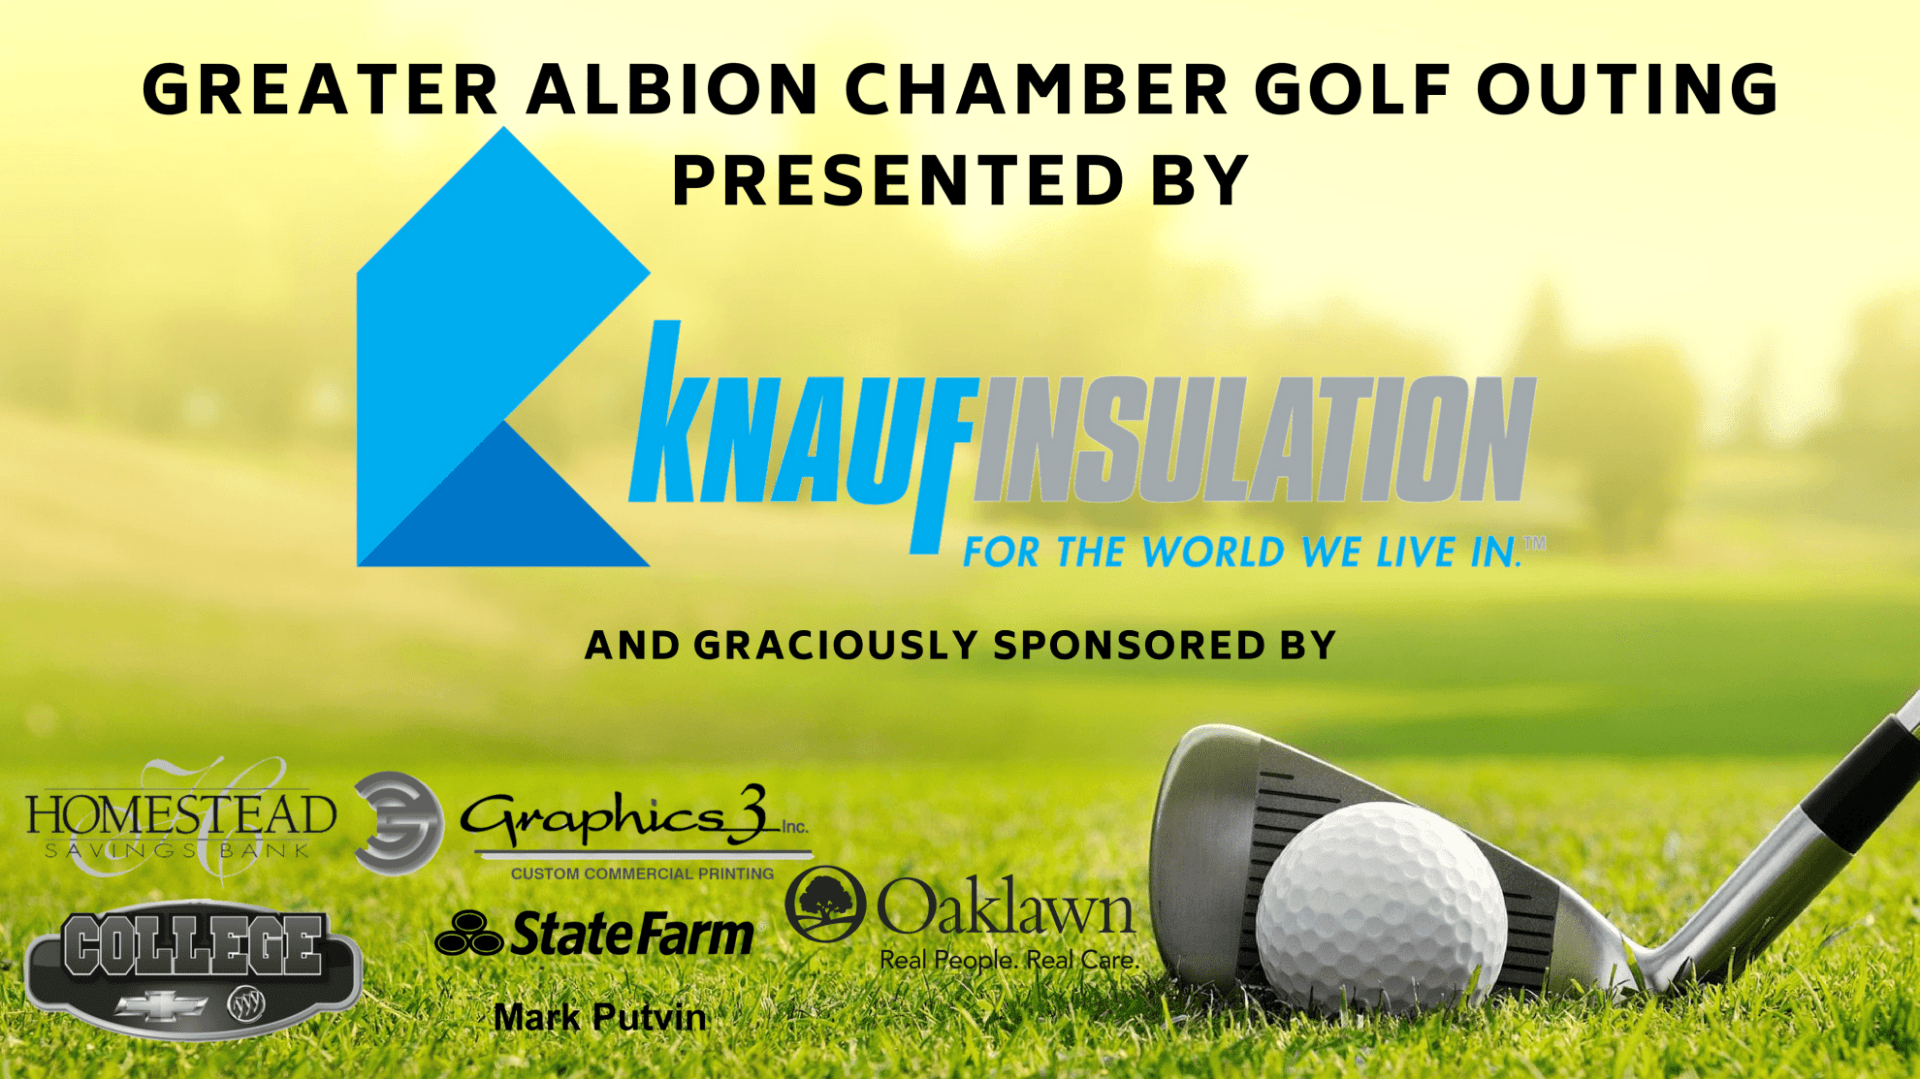 Greater Albion Chamber Golf Outing